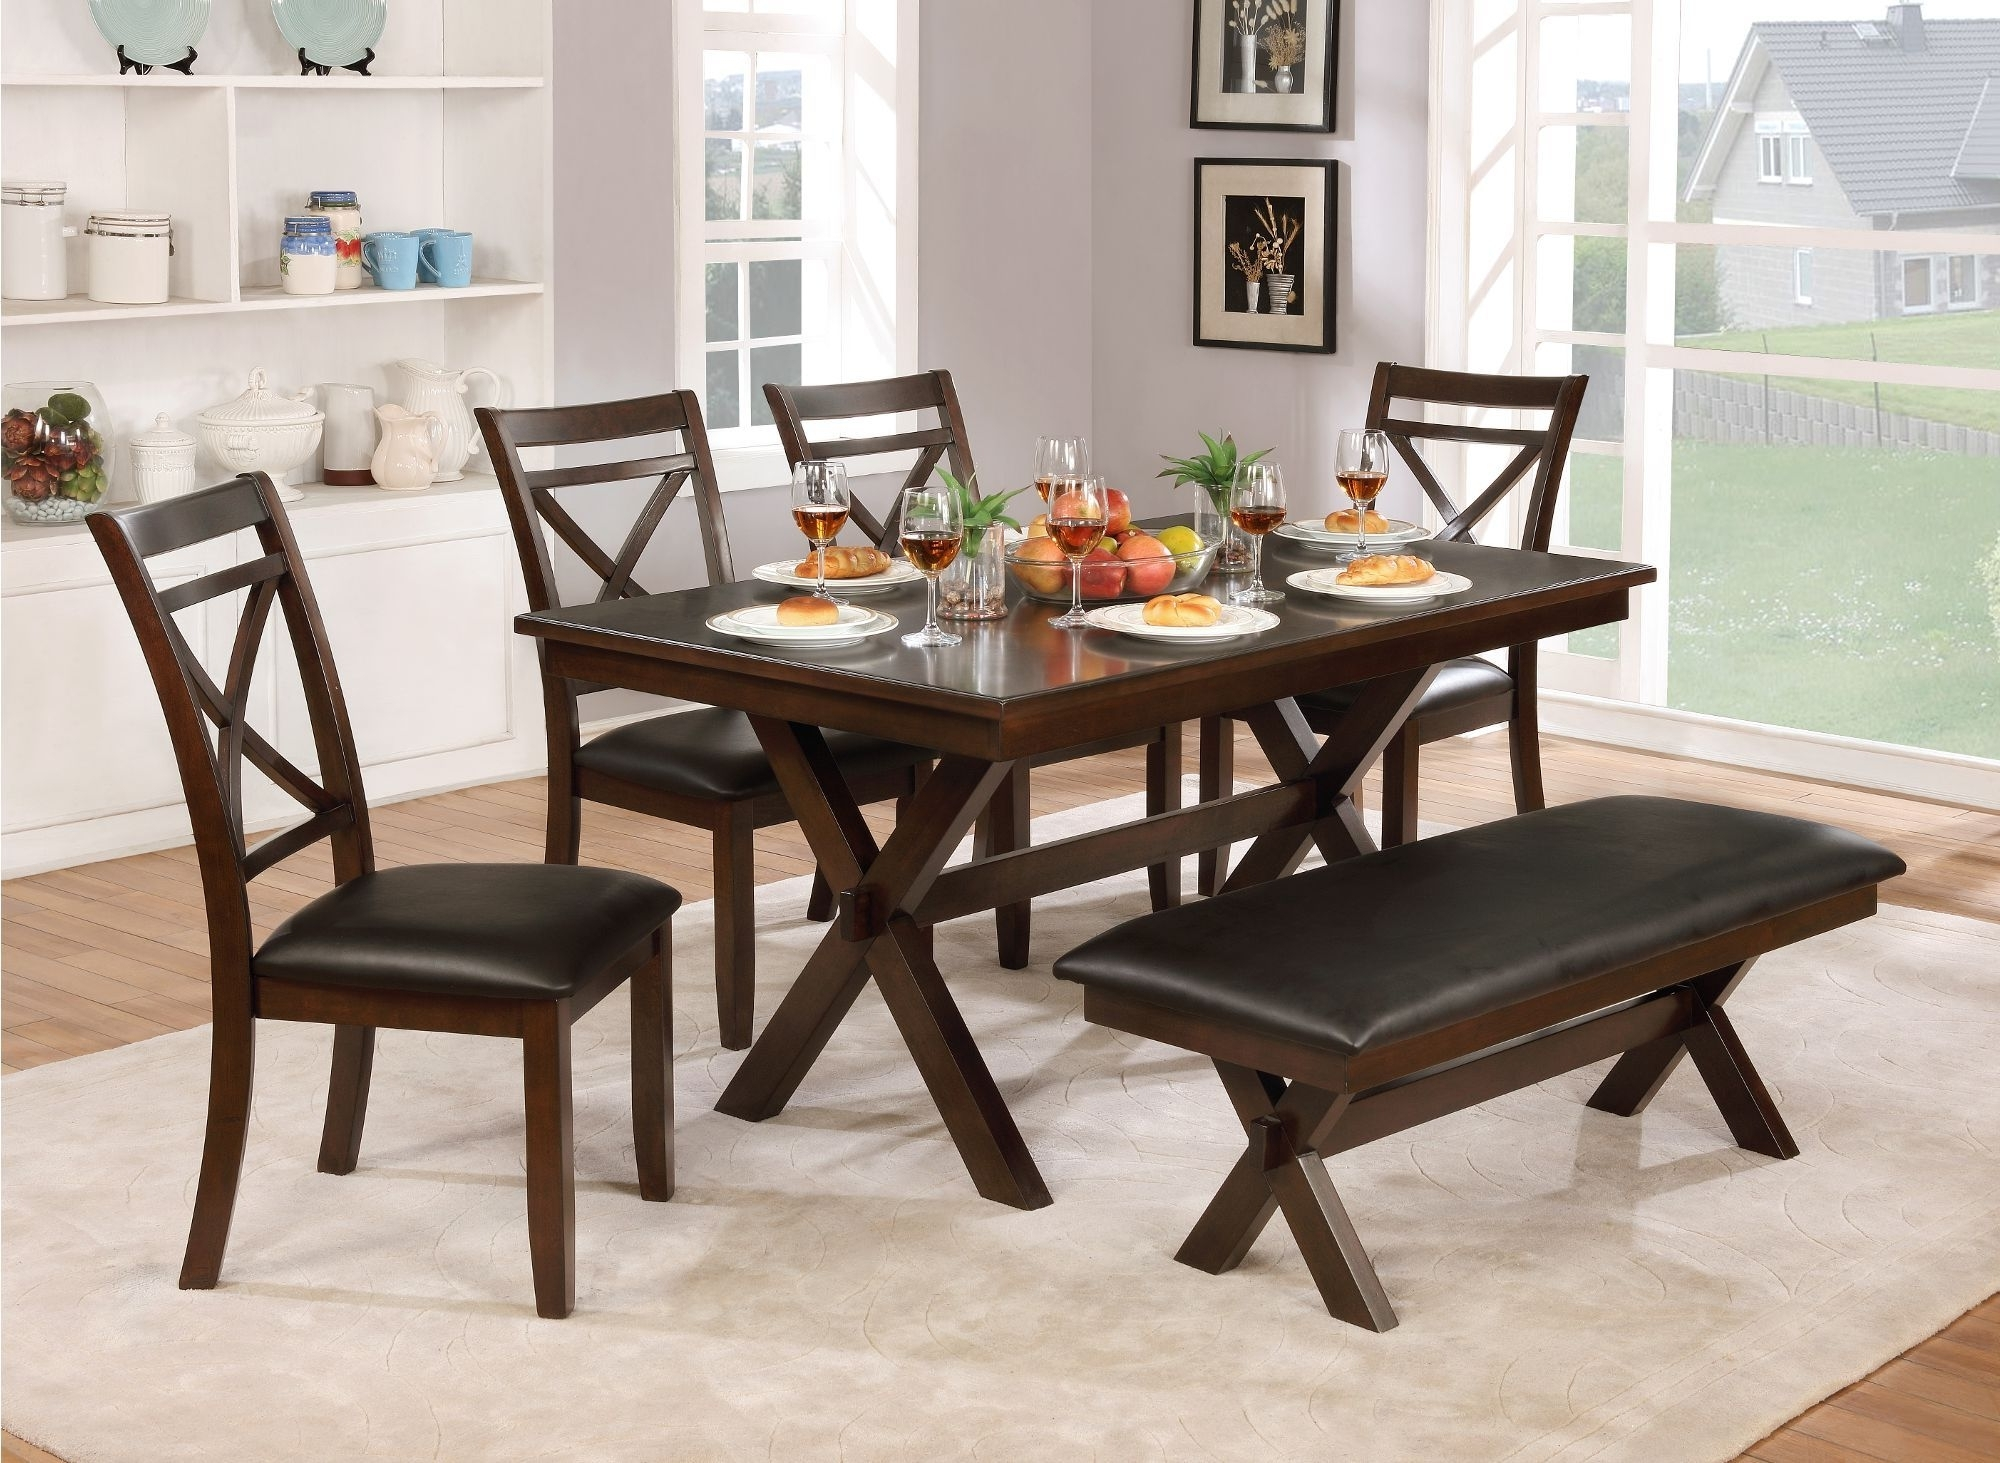 Caden 6 Piece Dining Sets With Upholstered Side Chair Within Most Current Clearance Dark Cherry Transitional 6 Piece Dining Set With Bench (View 12 of 25)